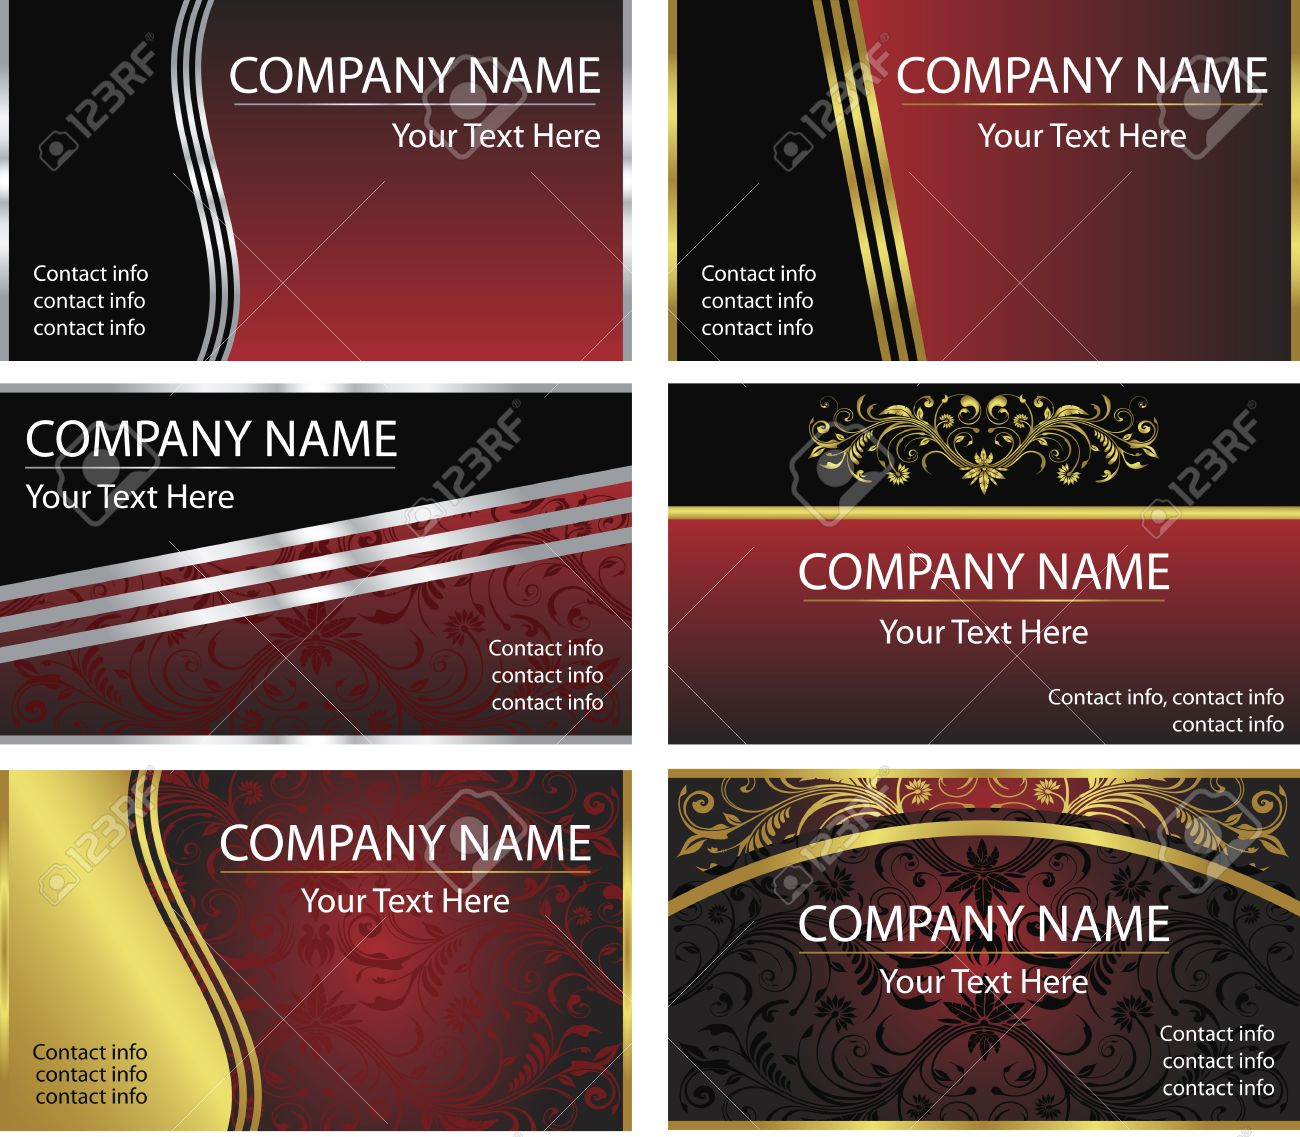 A set of six corporate elegant business card background templates a set of six corporate elegant business card background templates in vector format stock fbccfo Choice Image